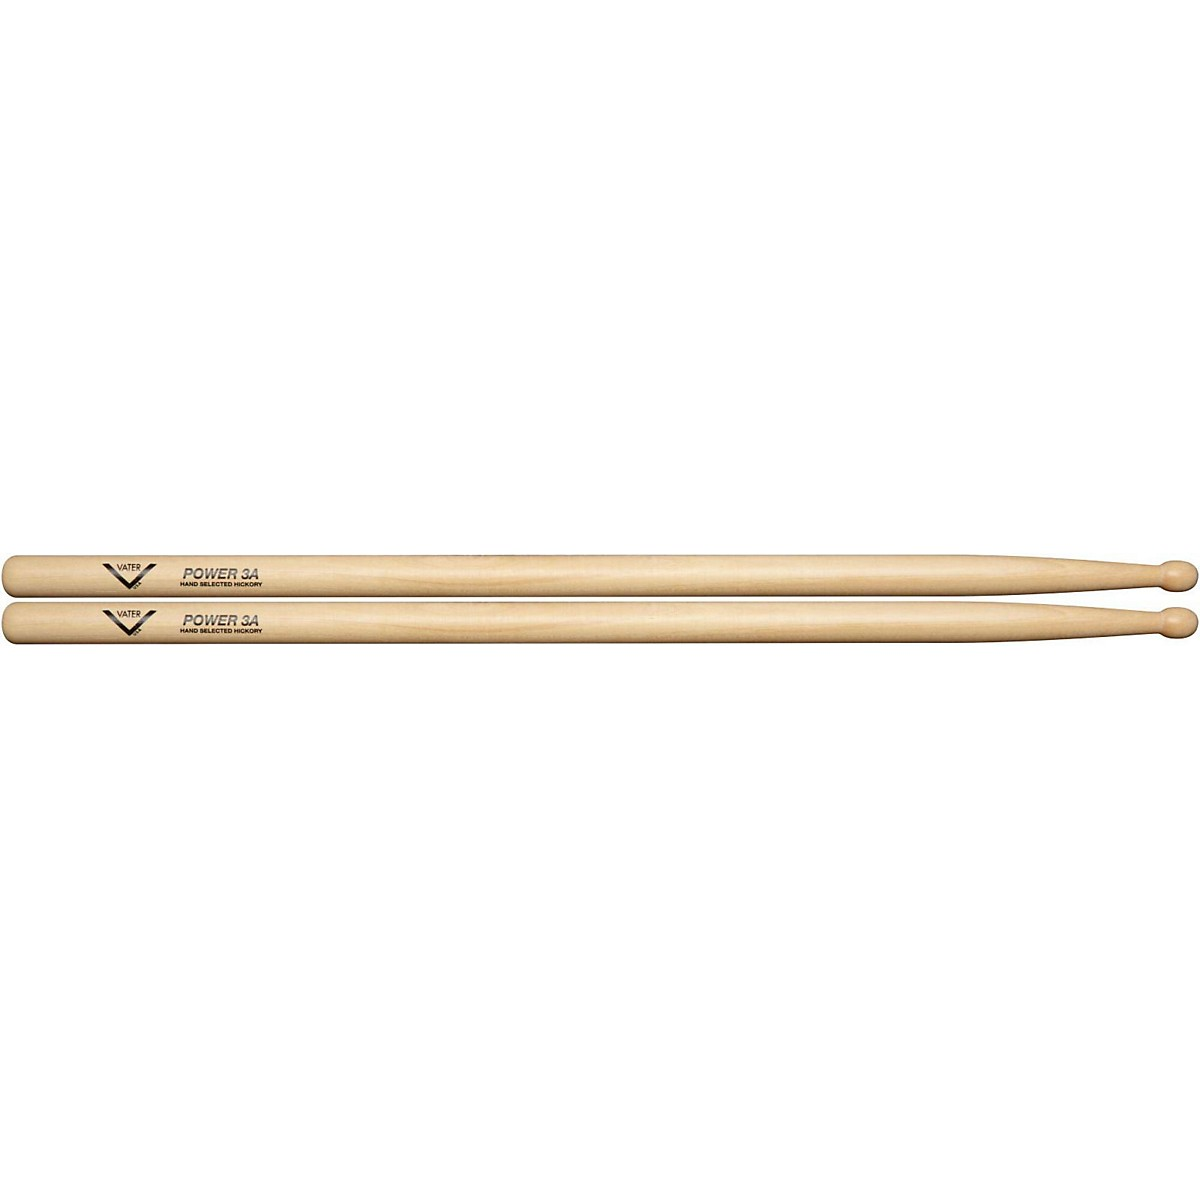 Vater Power Wood Tip Drumsticks - Pair